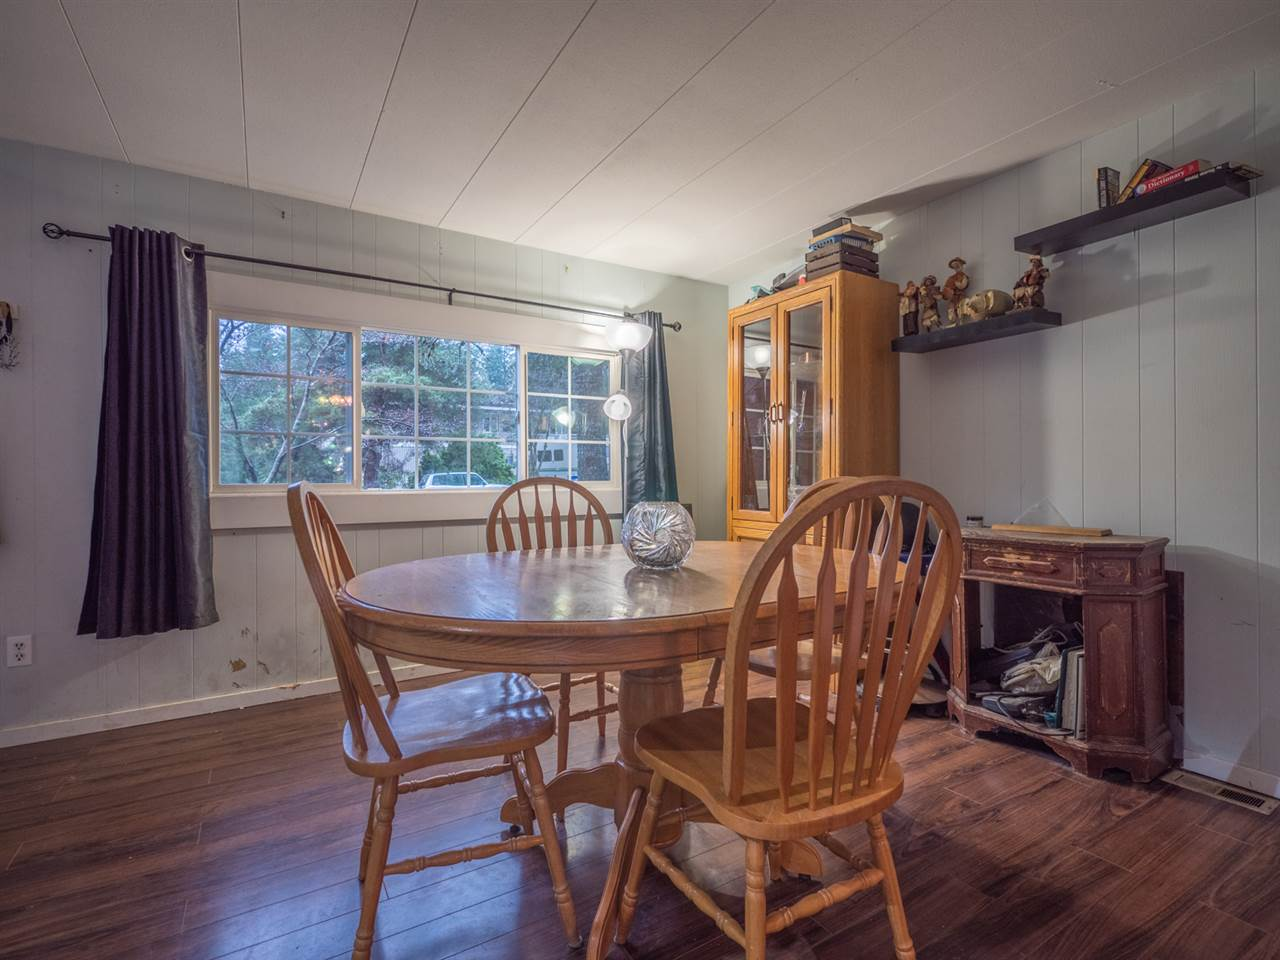 Photo 6: Photos: 5592 WAKEFIELD Road in Sechelt: Sechelt District Manufactured Home for sale (Sunshine Coast)  : MLS®# R2230720